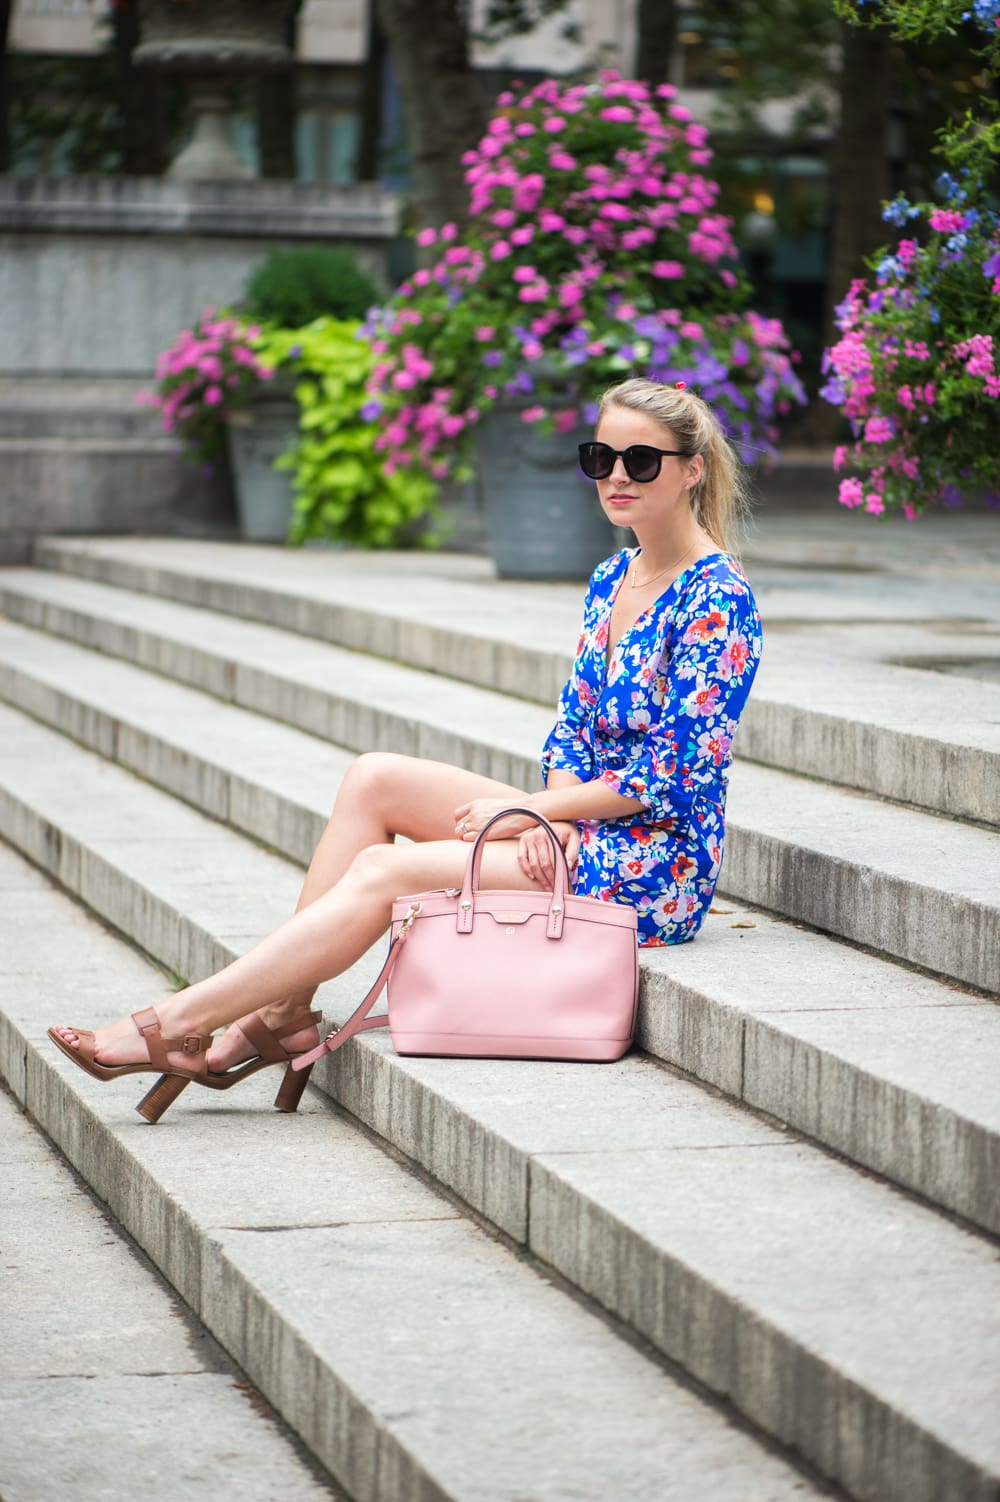 a20a553ceee YUMI KIM FLORAL ROMPER - Styled Snapshots